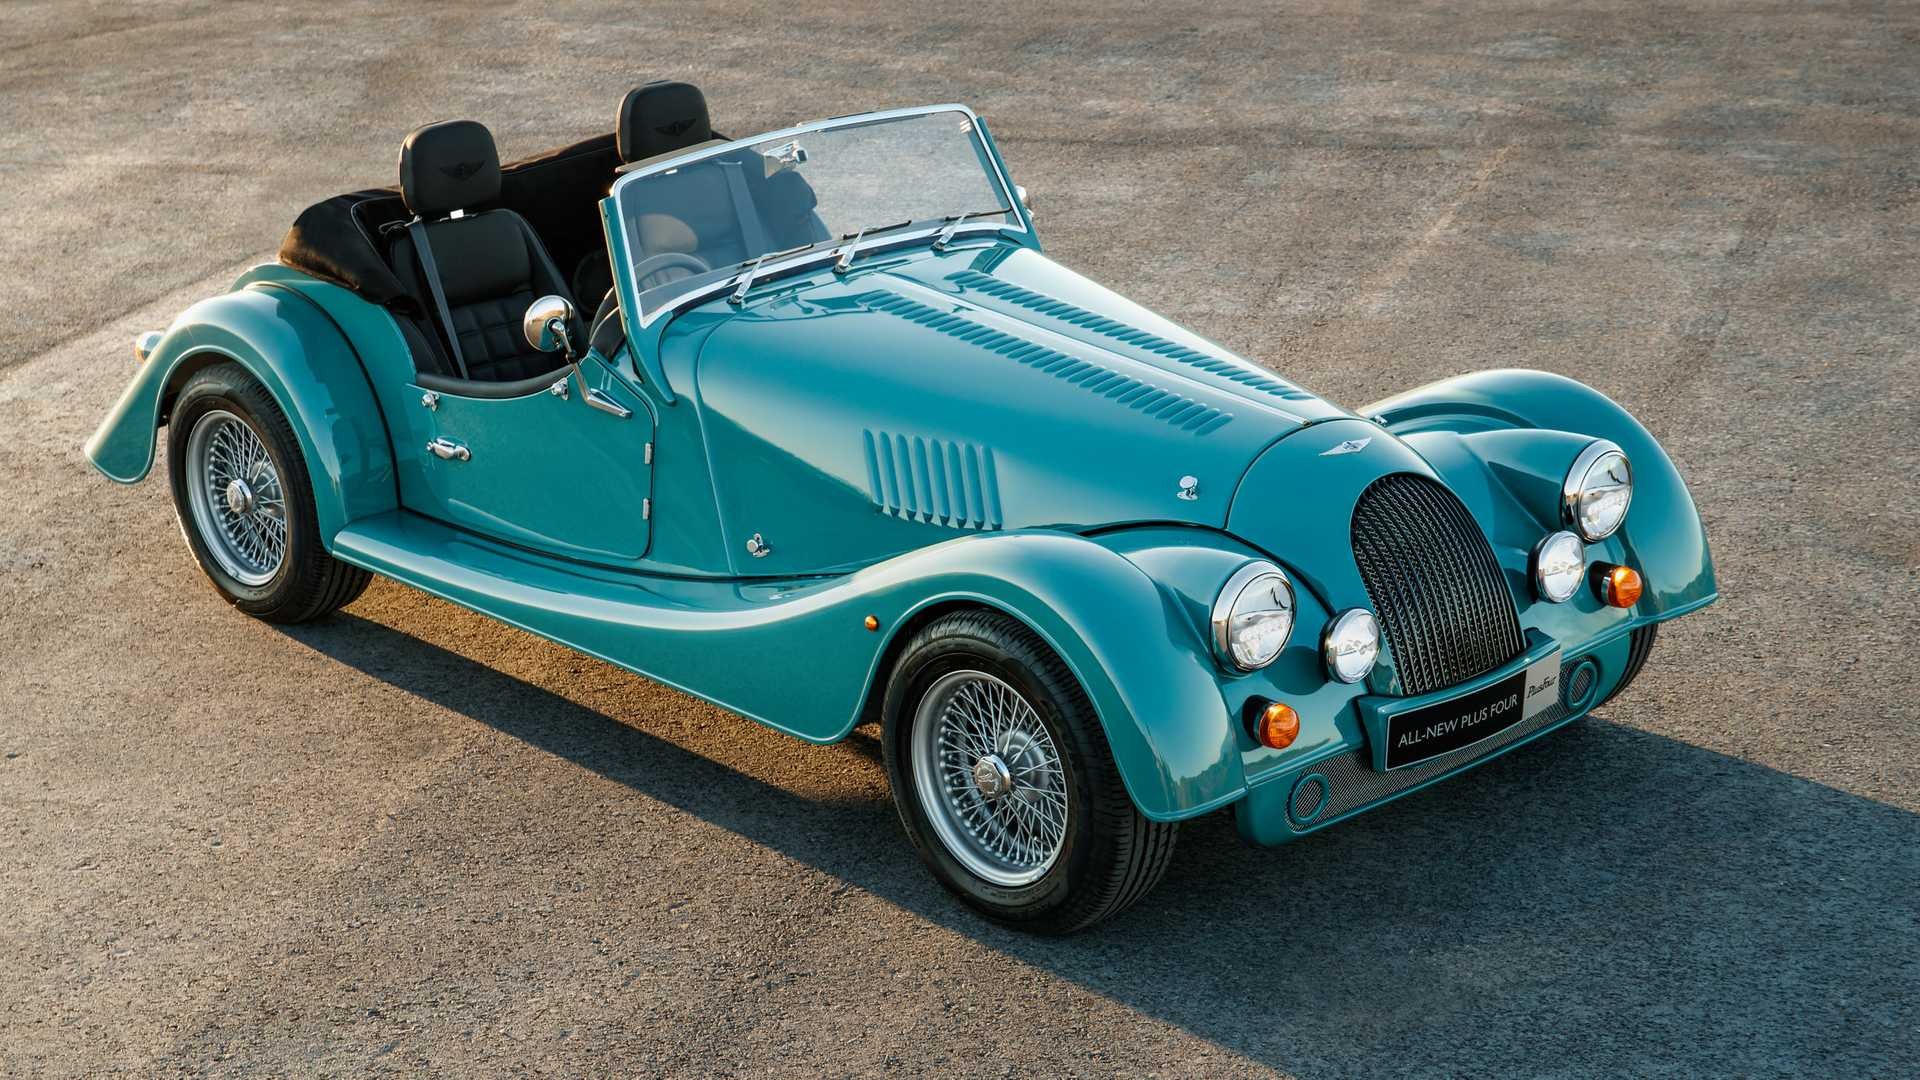 Morgan Plus Four Is Brand S First Four Cylinder Turbo Car Buy new/used supercars at the best prices in america's original morgan car experts providing nationwide sales and service for the us since 1968. morgan plus four is brand s first four